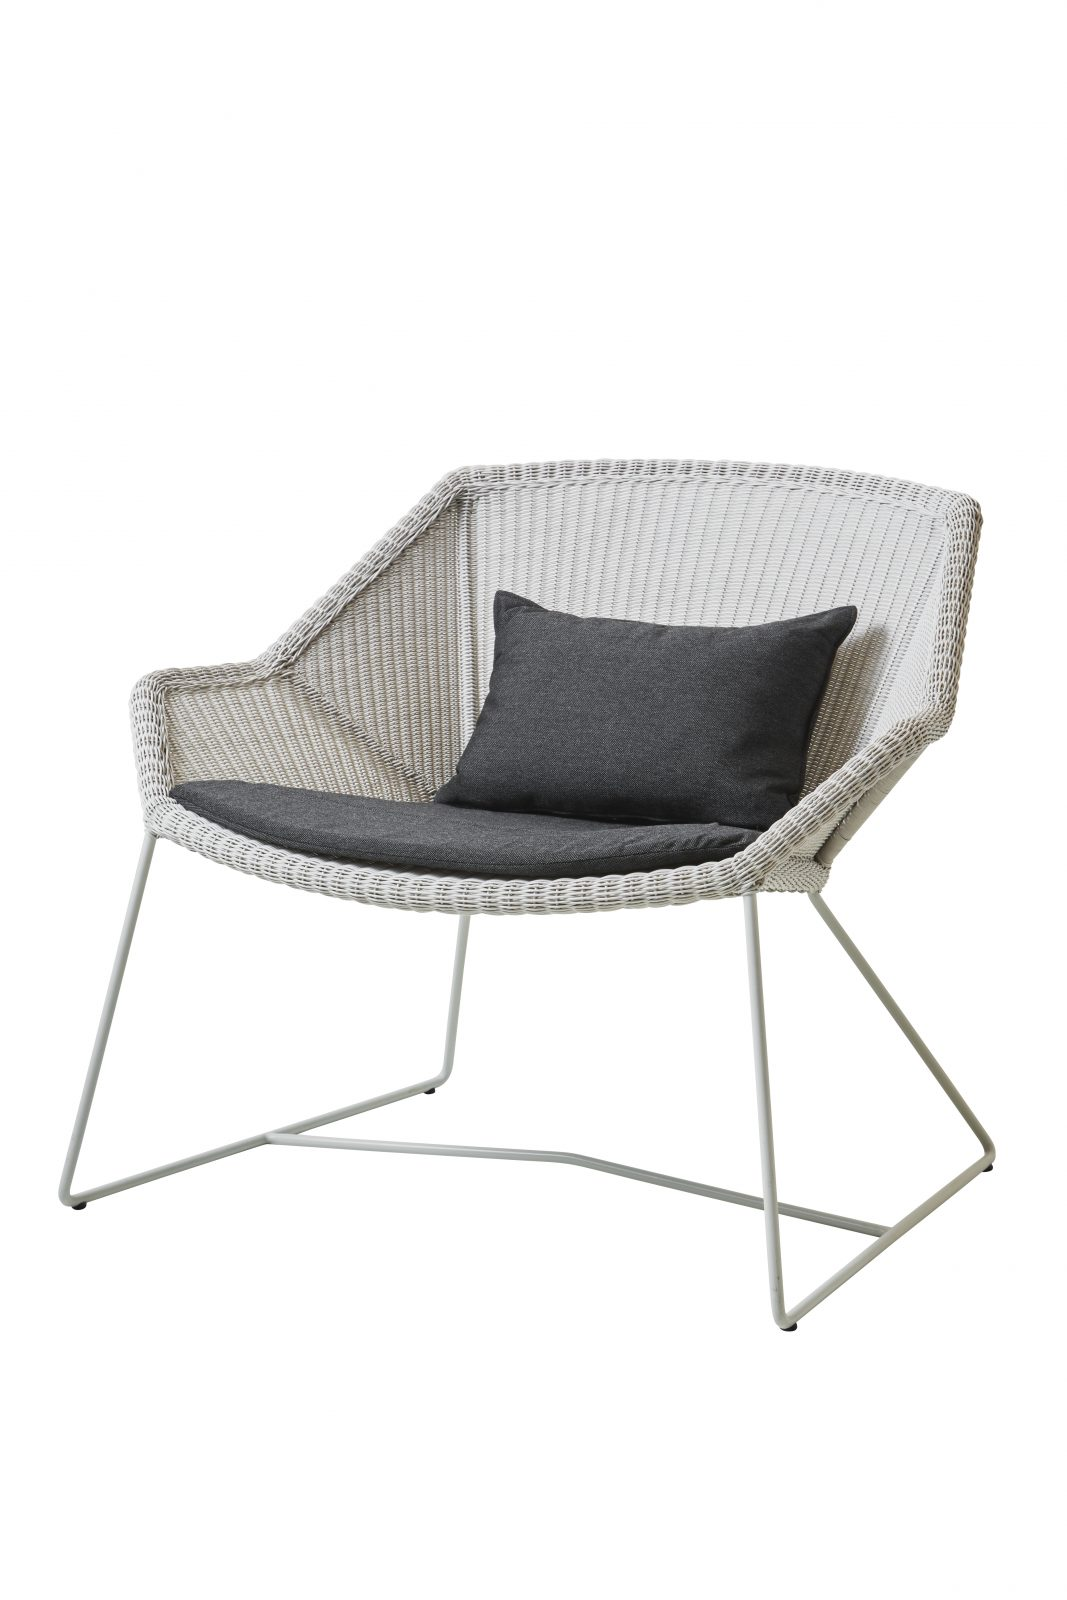 cane line breeze lounge chair available at nordic urban in. Black Bedroom Furniture Sets. Home Design Ideas